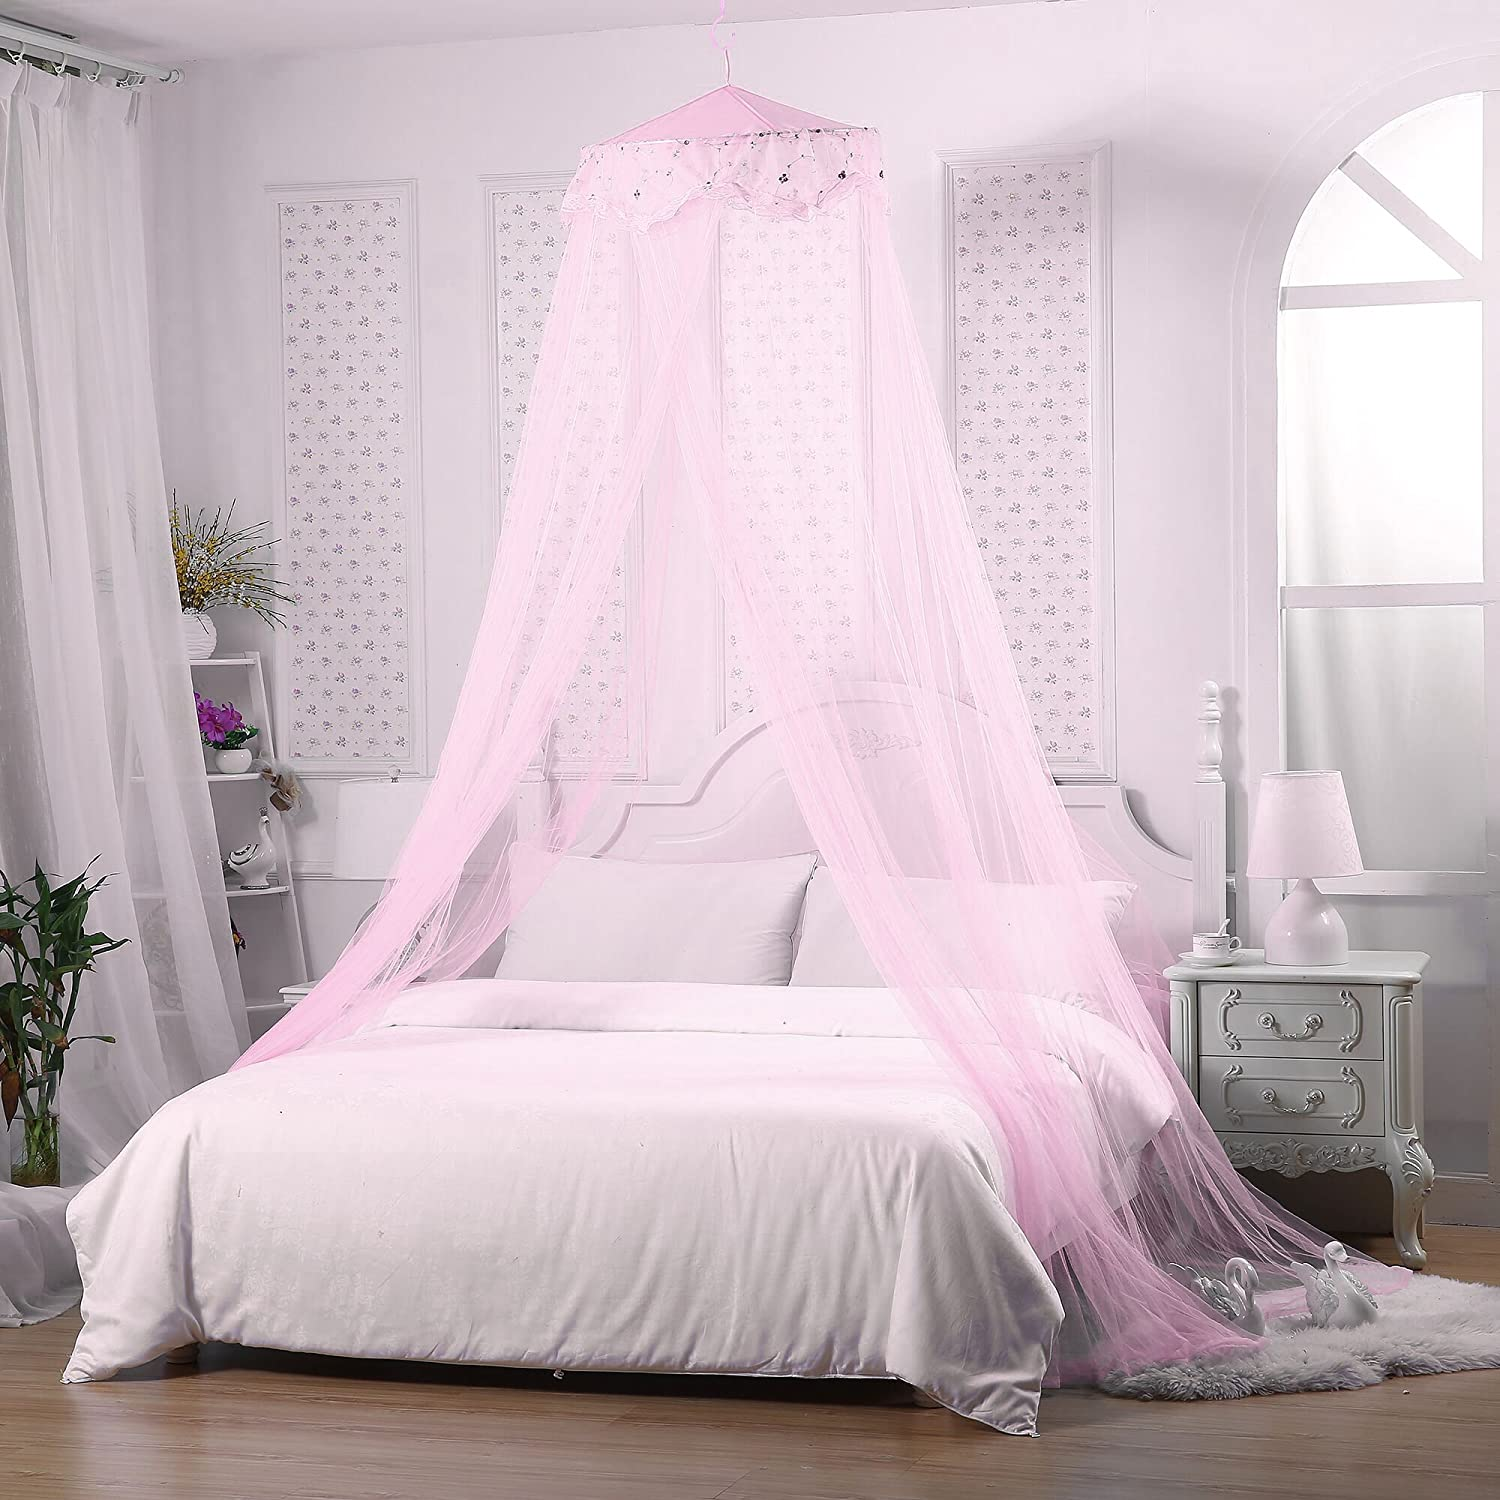 most popular price reduced latest fashion Jeteven Girl Bed Canopy Lace Mosquito Net for Girls Bed, Princess Play Tent  Reading Nook Round Lace Dome Curtains Baby Kids Games House (Pink)